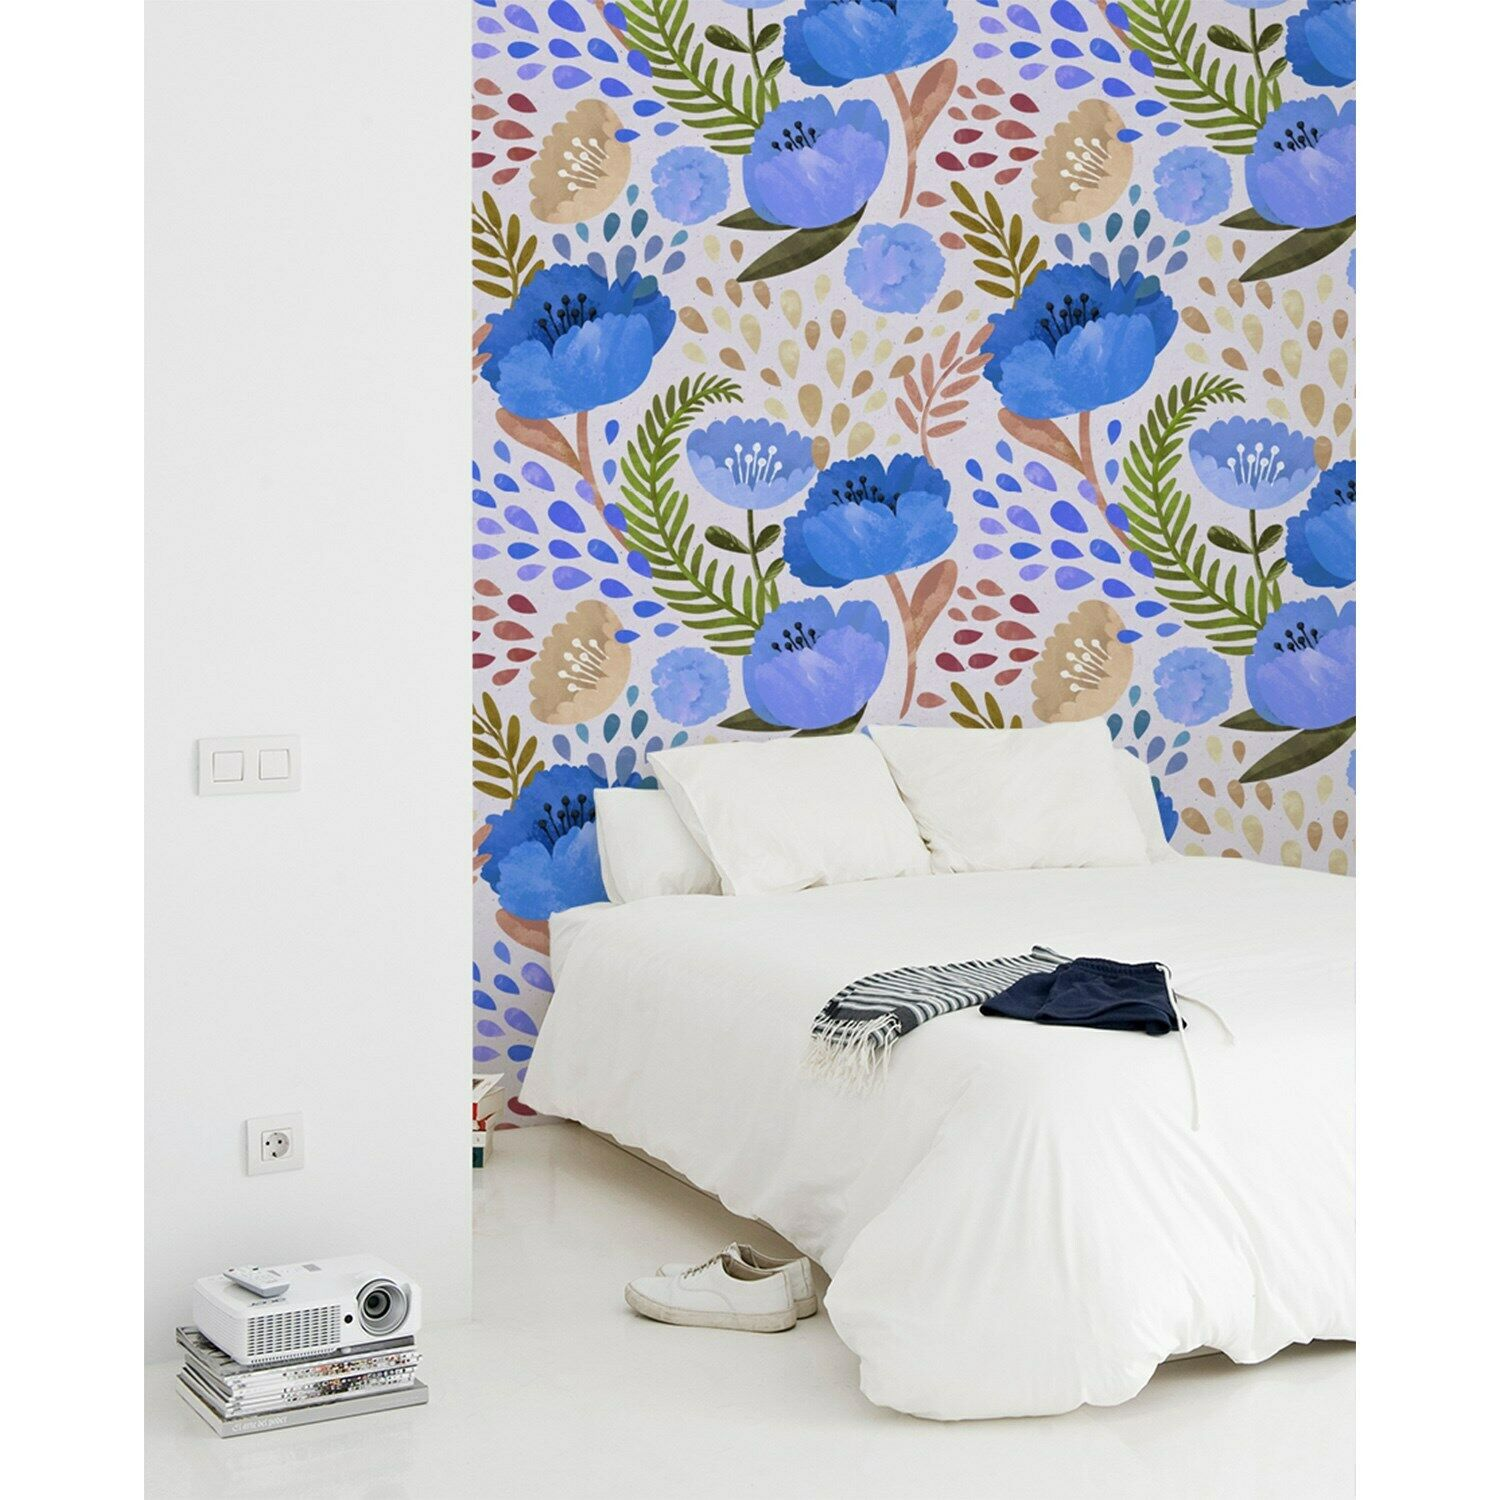 Poppy wall Home Mural Vintage floral Roll traditional Non-Woven wallpaper Decor